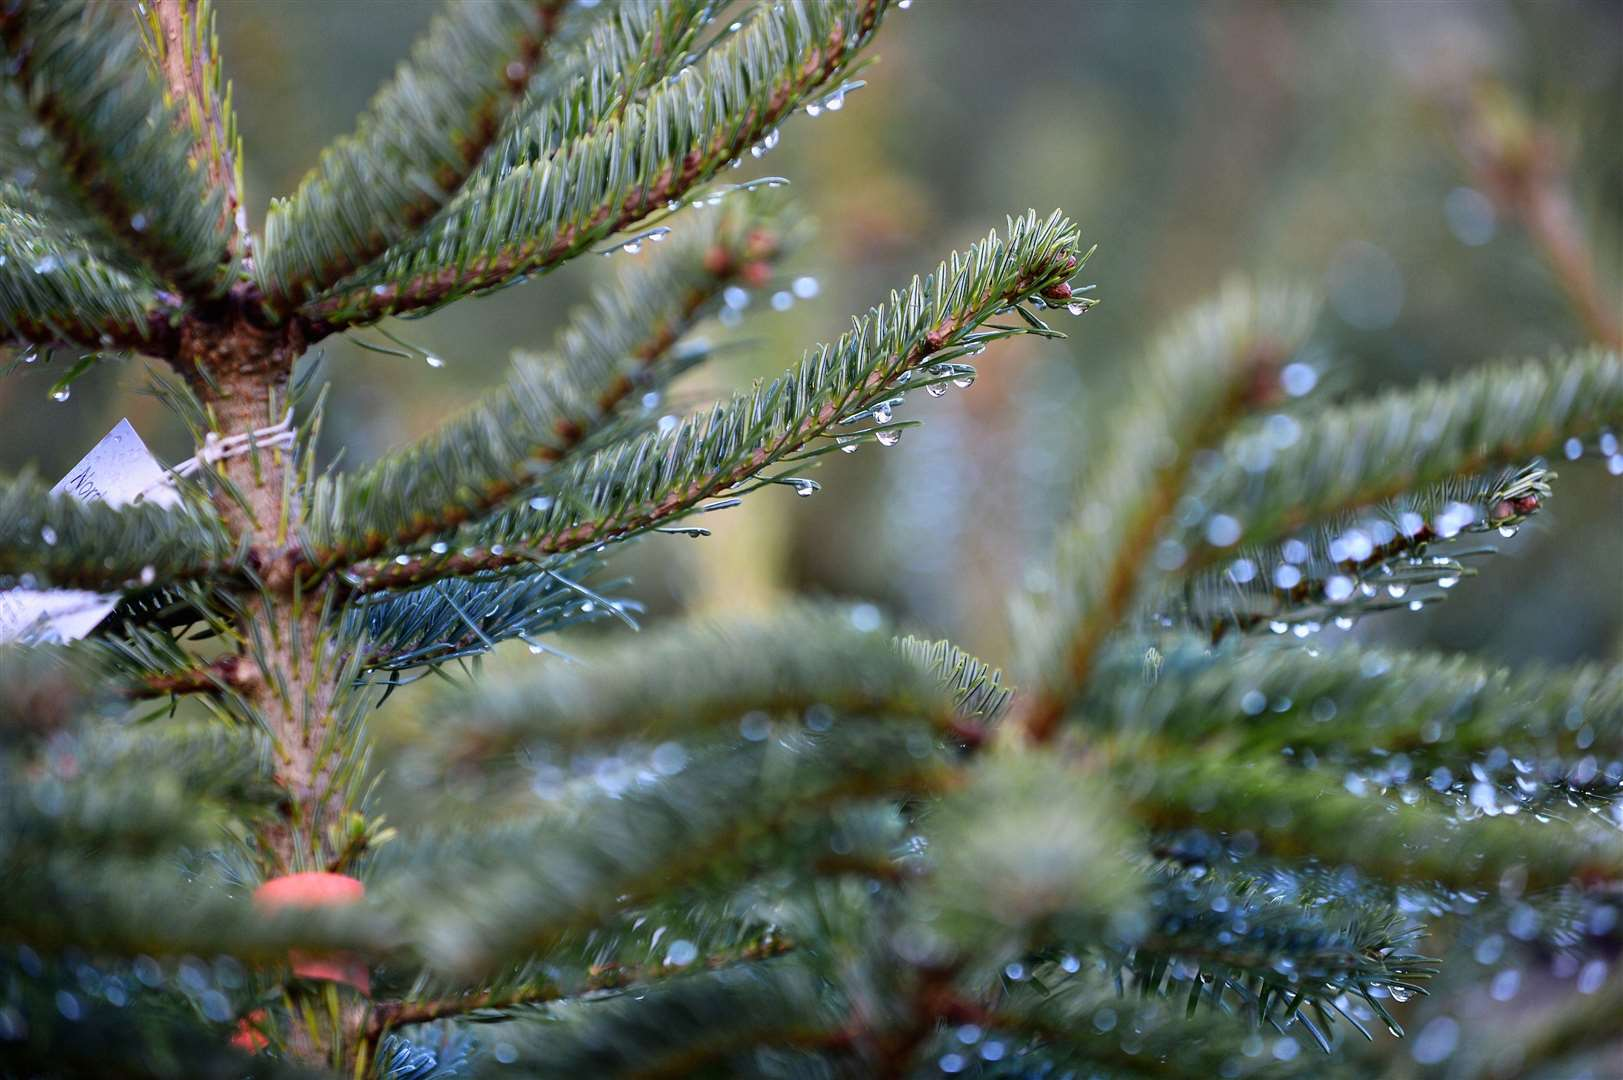 Around seven million real Christmas trees are sold each year